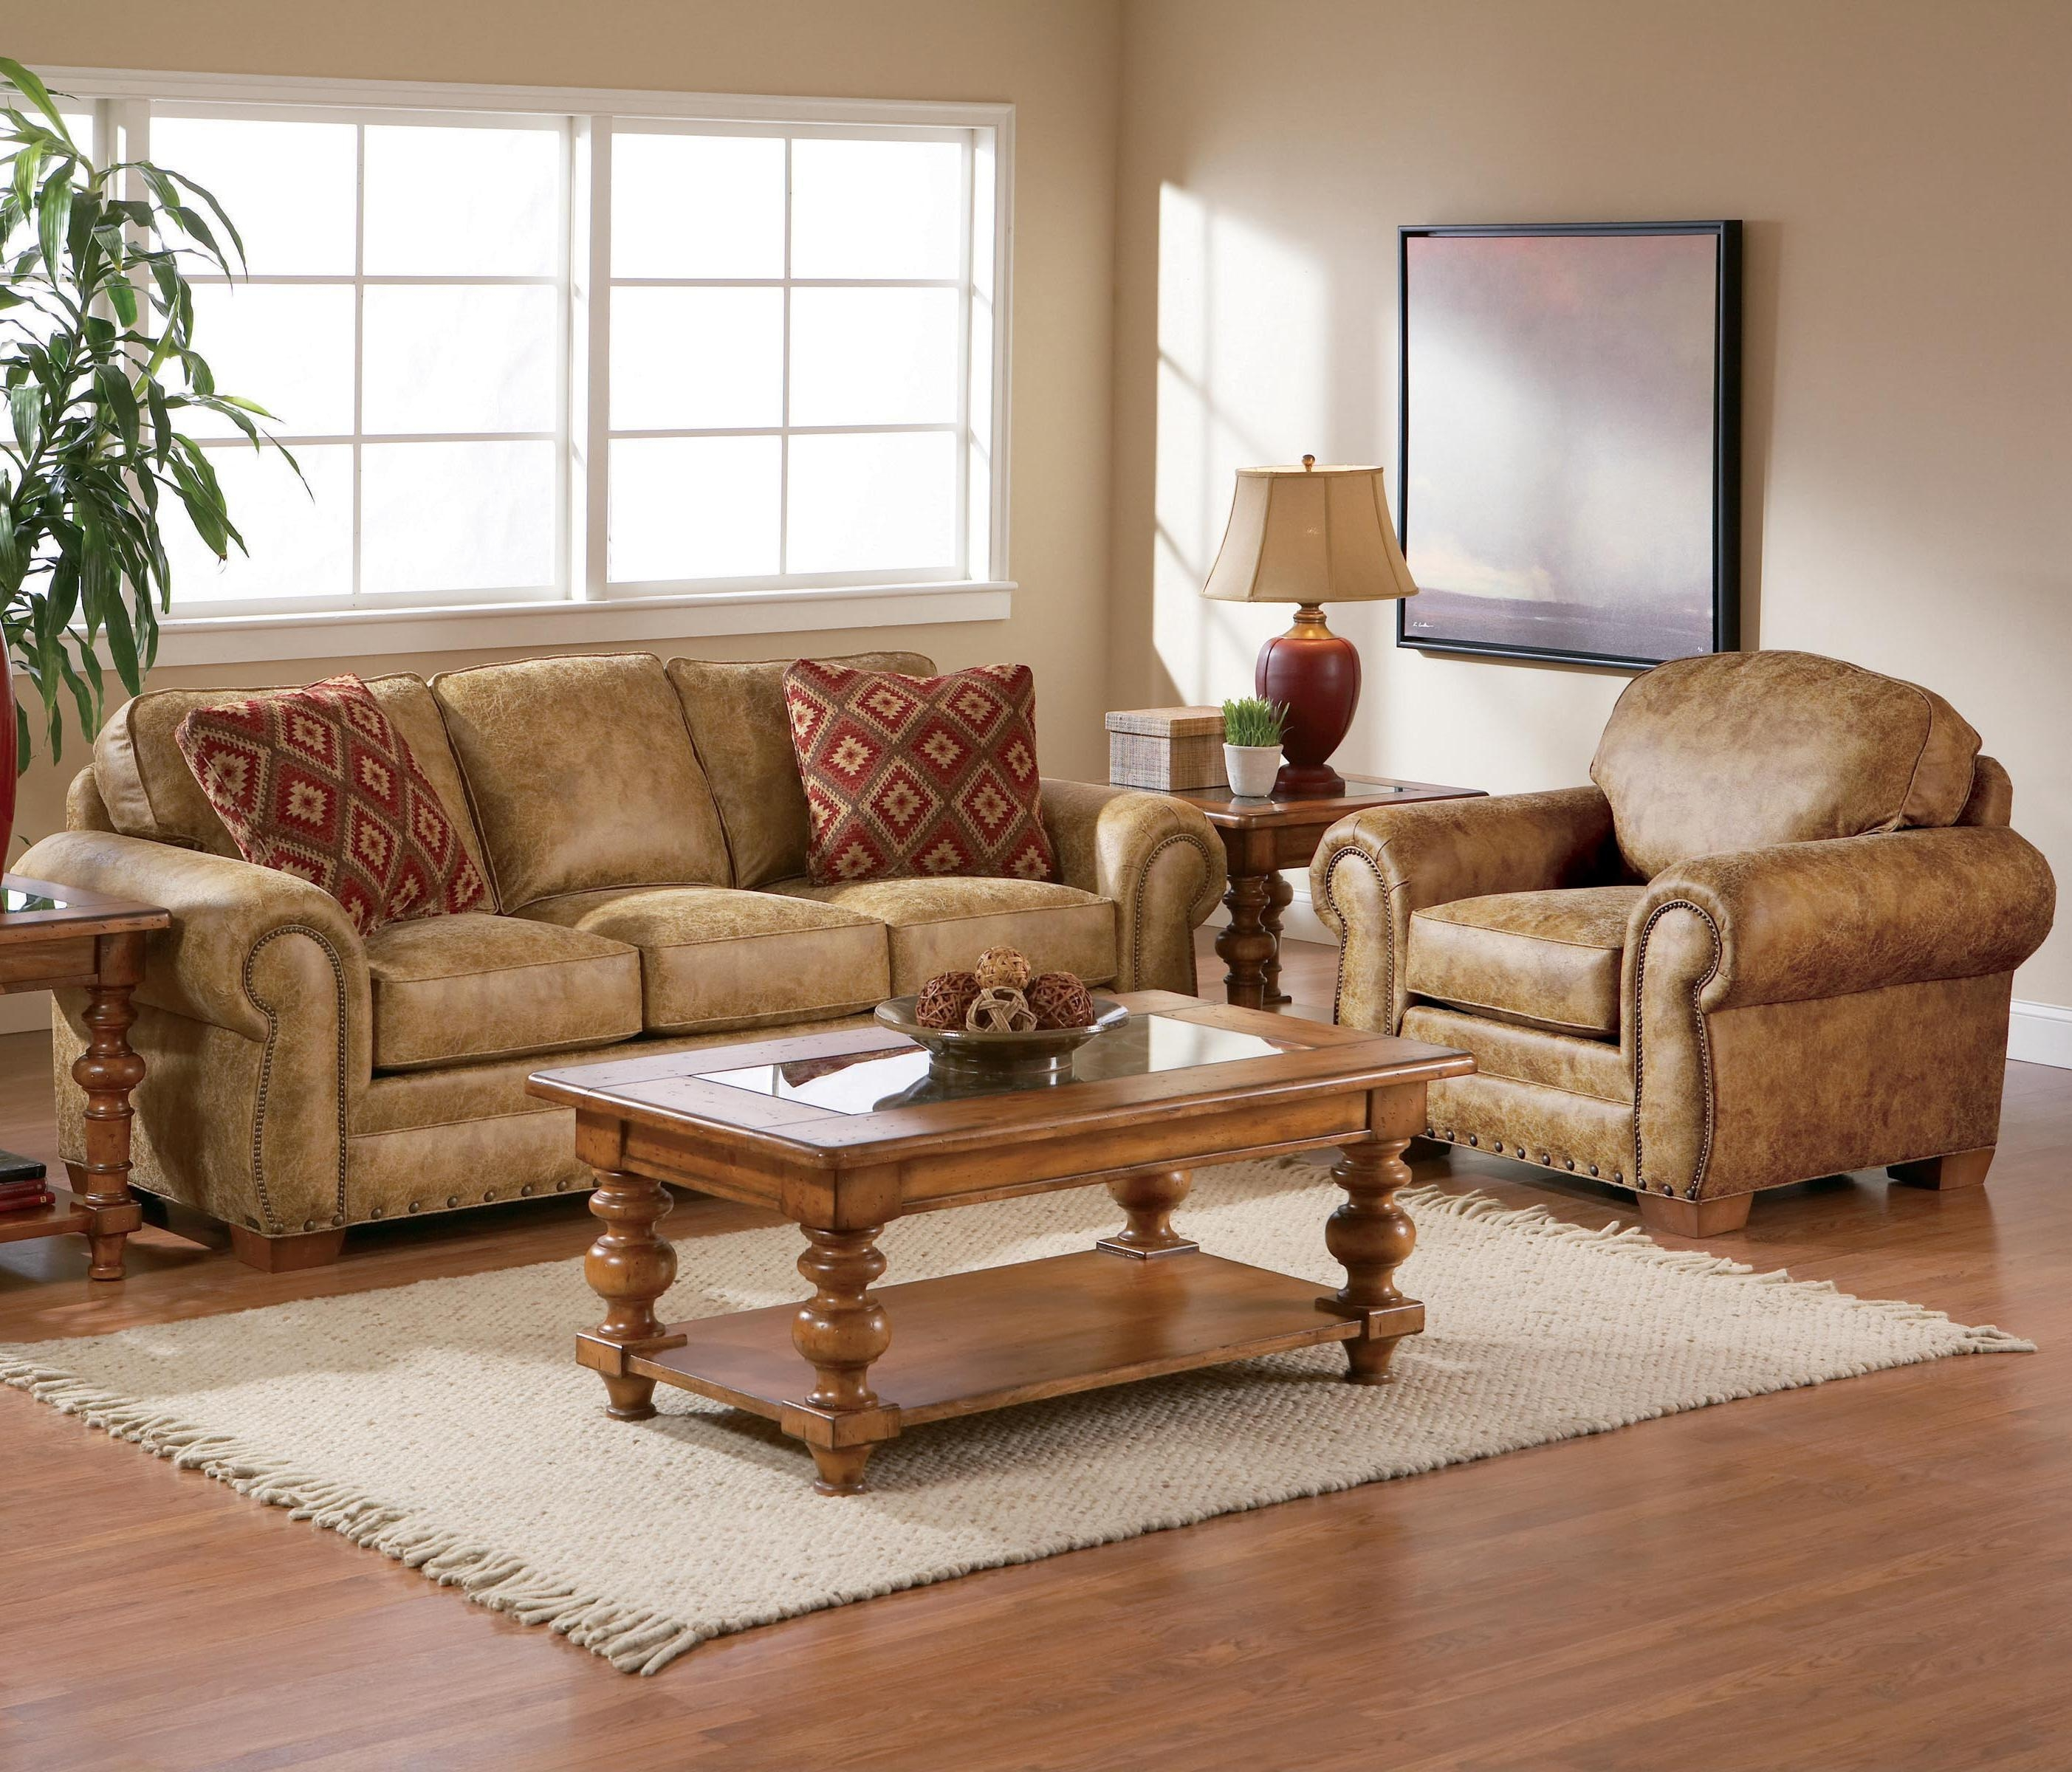 Furniture: Stunning Broyhill Sofas For Enchanting Living Room Pertaining To Broyhill Emily Sofas (View 5 of 20)